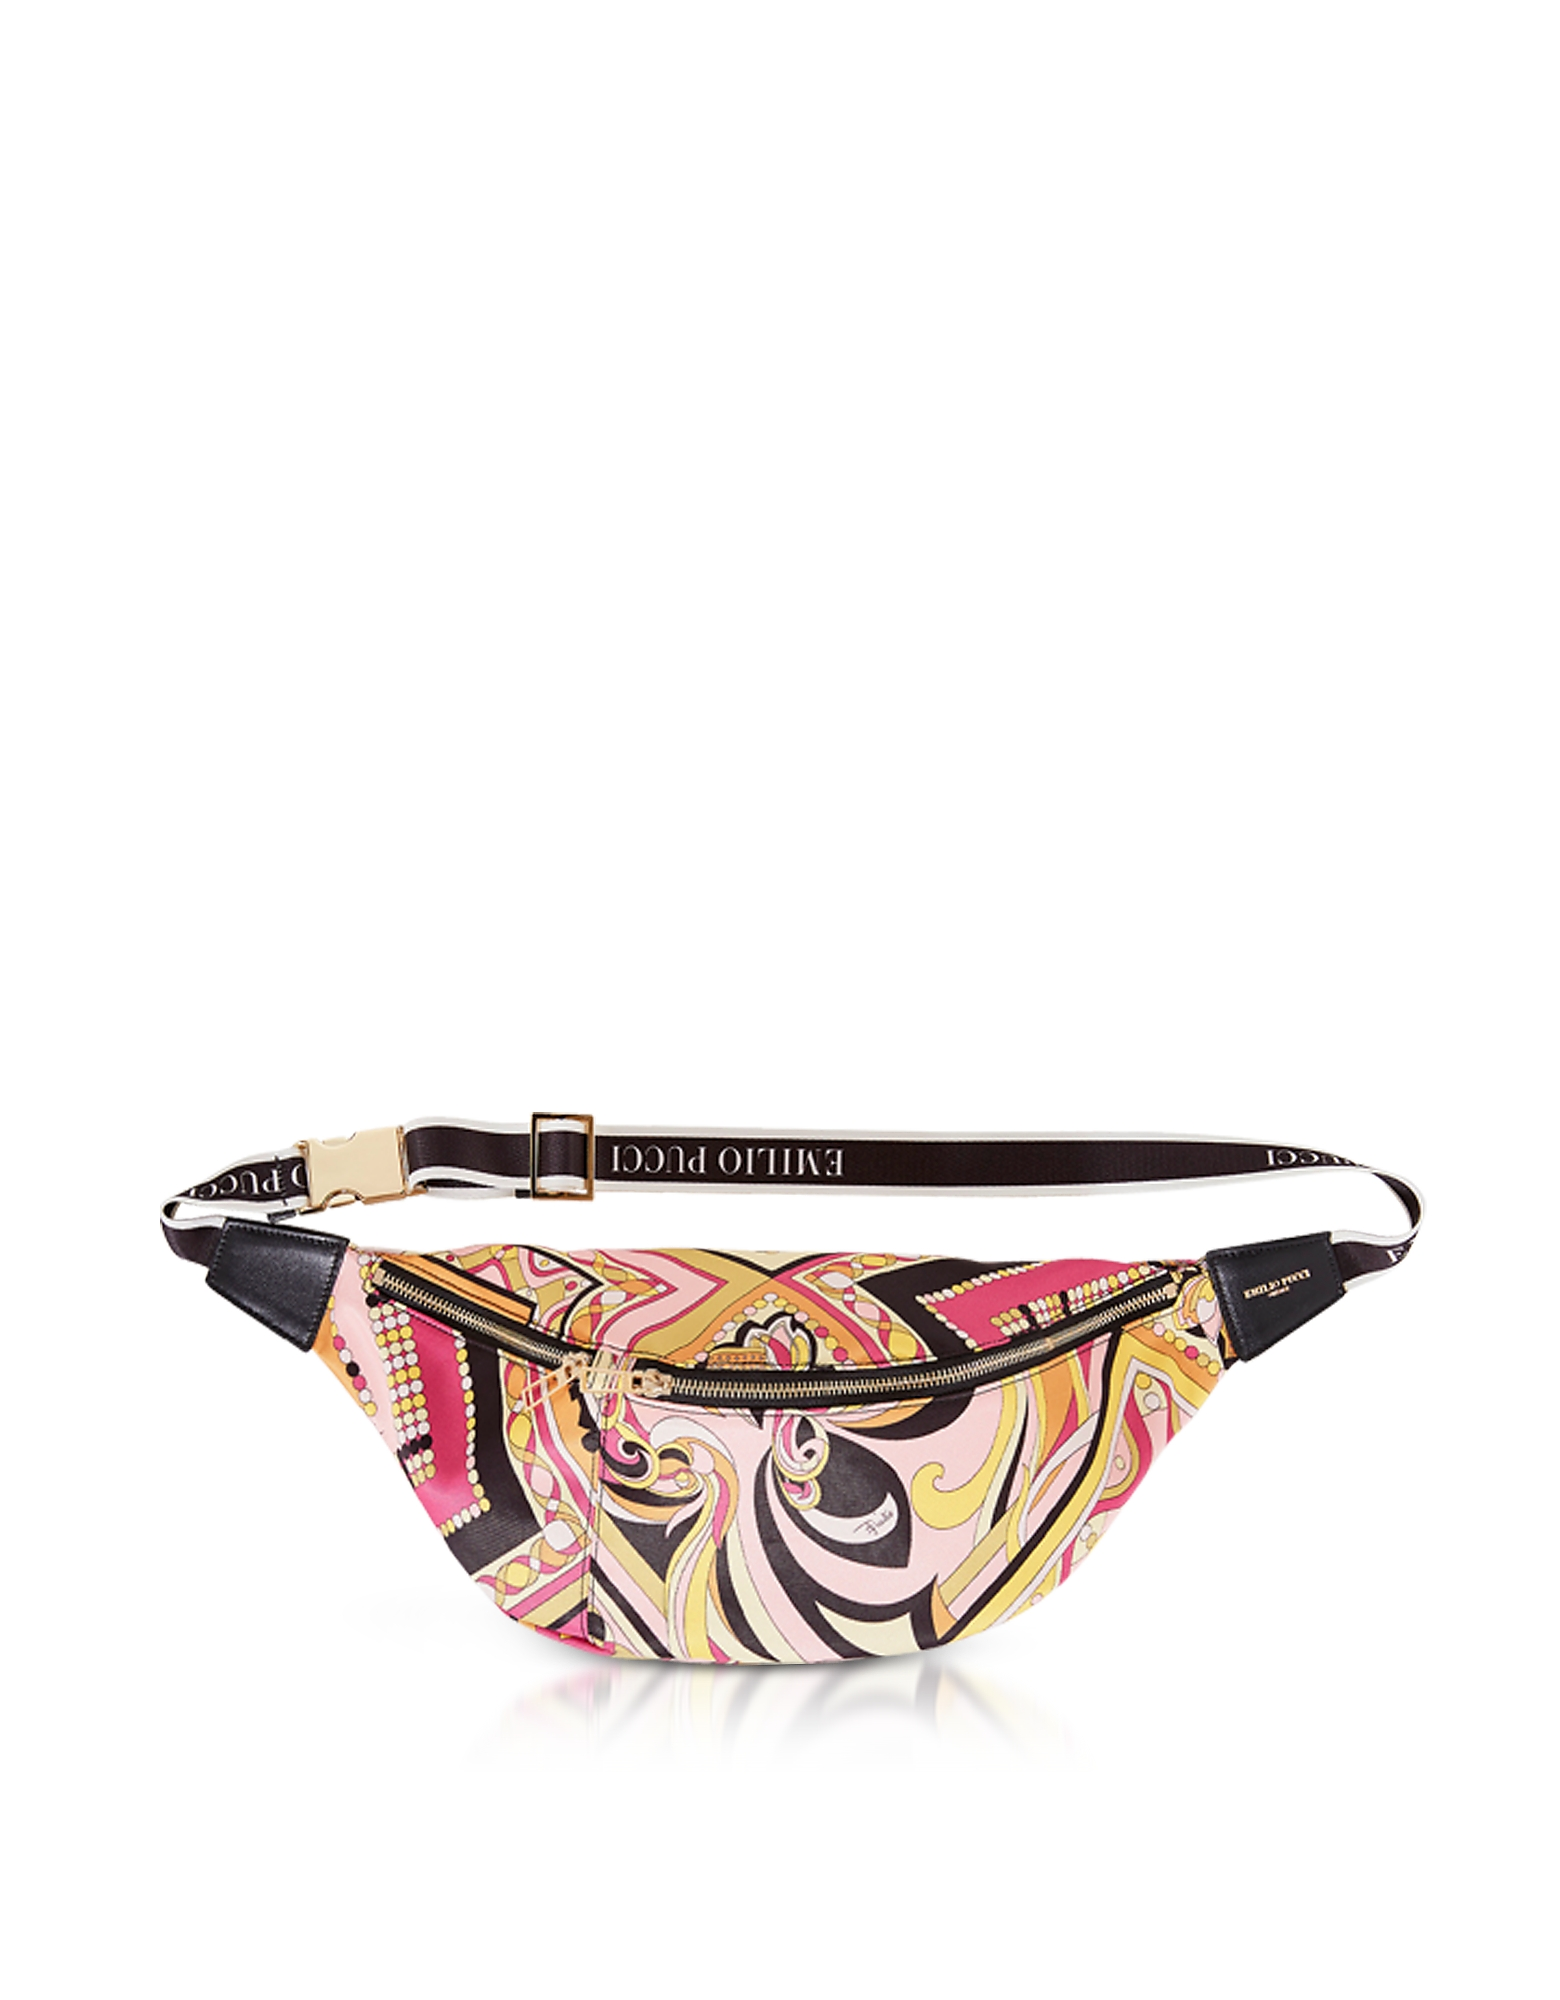 Black and Almond Printed Fabric Belt Bag